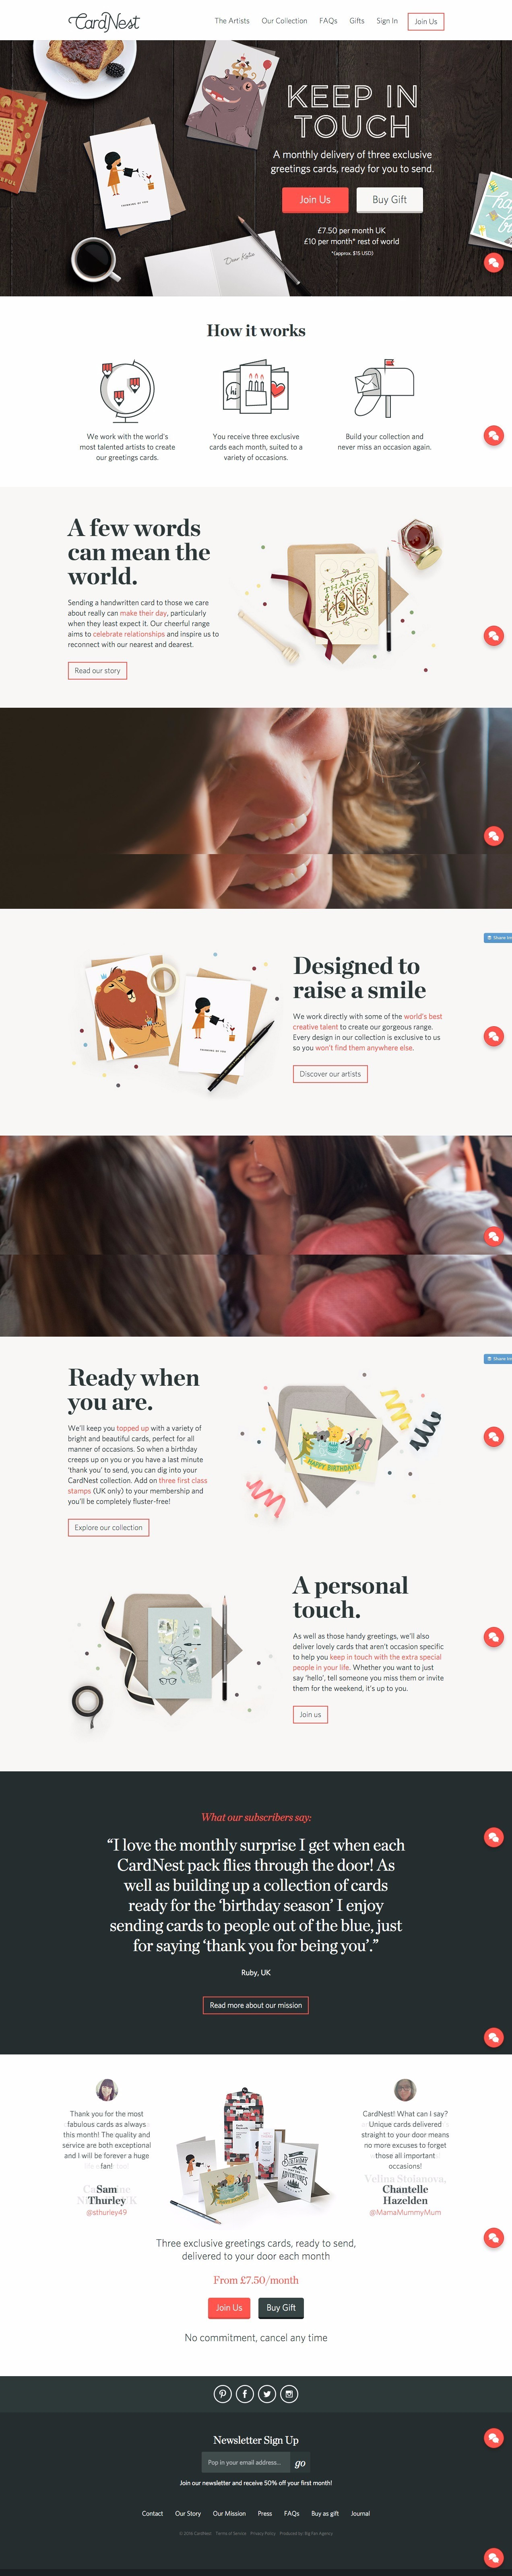 Cardnest greeting cards subscription web design pinterest cardnest greeting cards subscription m4hsunfo